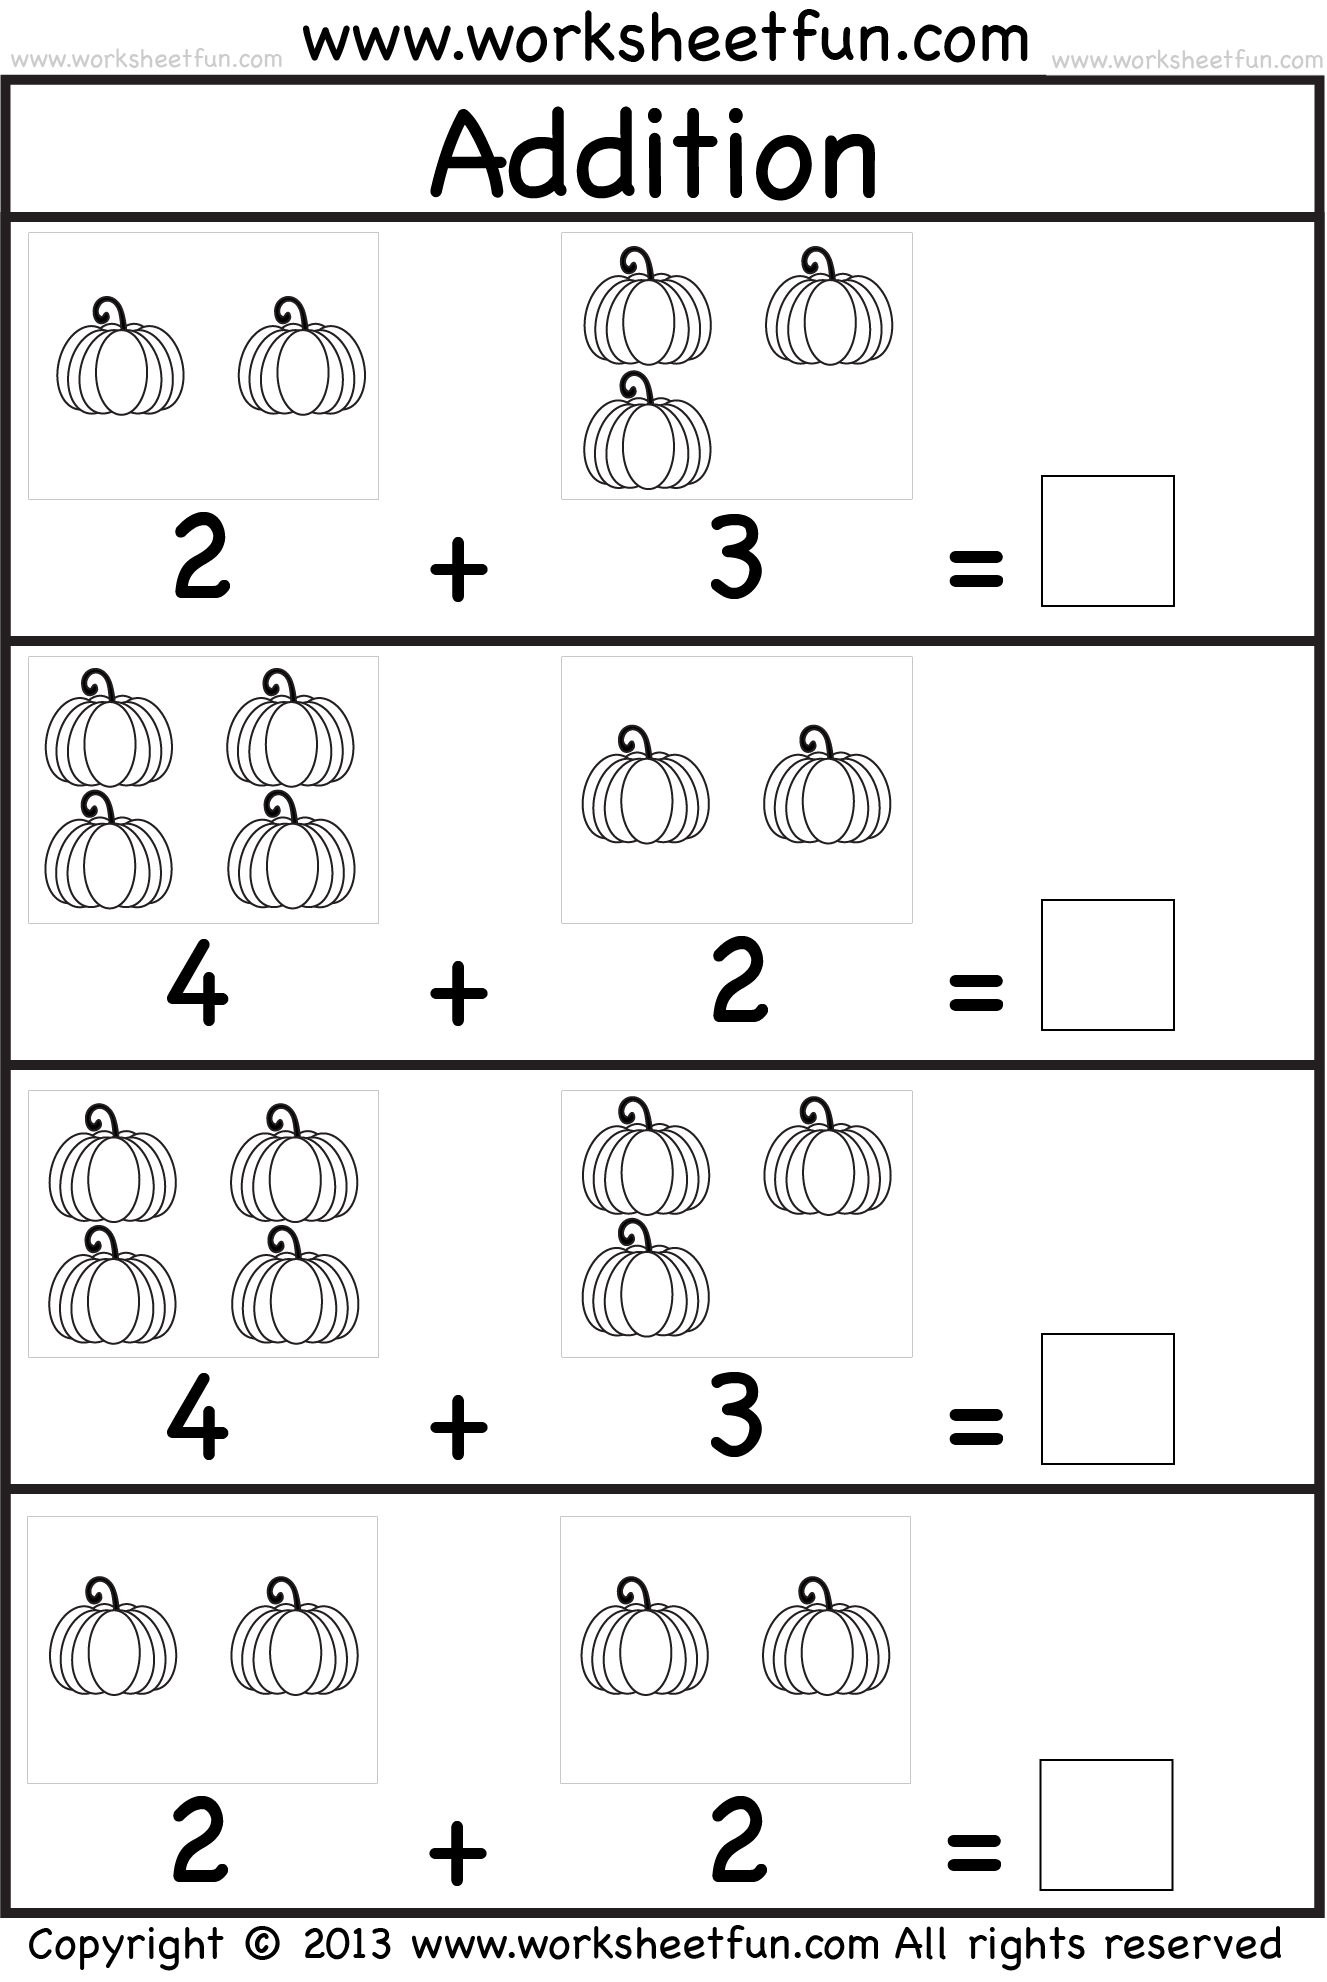 Pumpkin Picture Addition Kindergarten Addition Worksheet Free Printable Worksheets